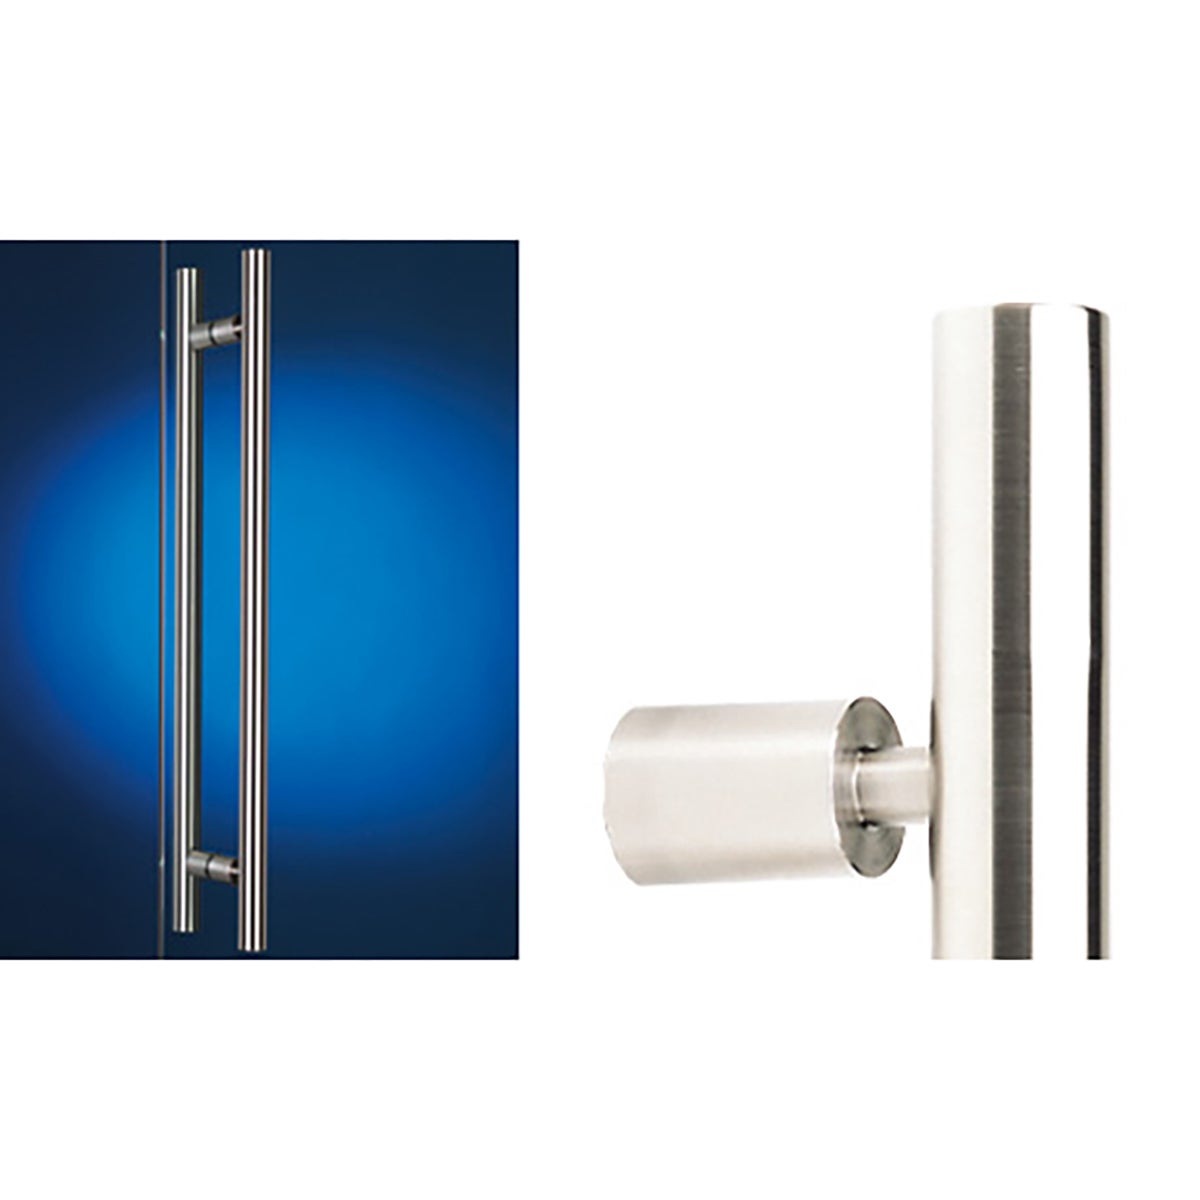 Madinoz 6400 Round Entry Handle Back To Back Satin Stainless Steel 500mm